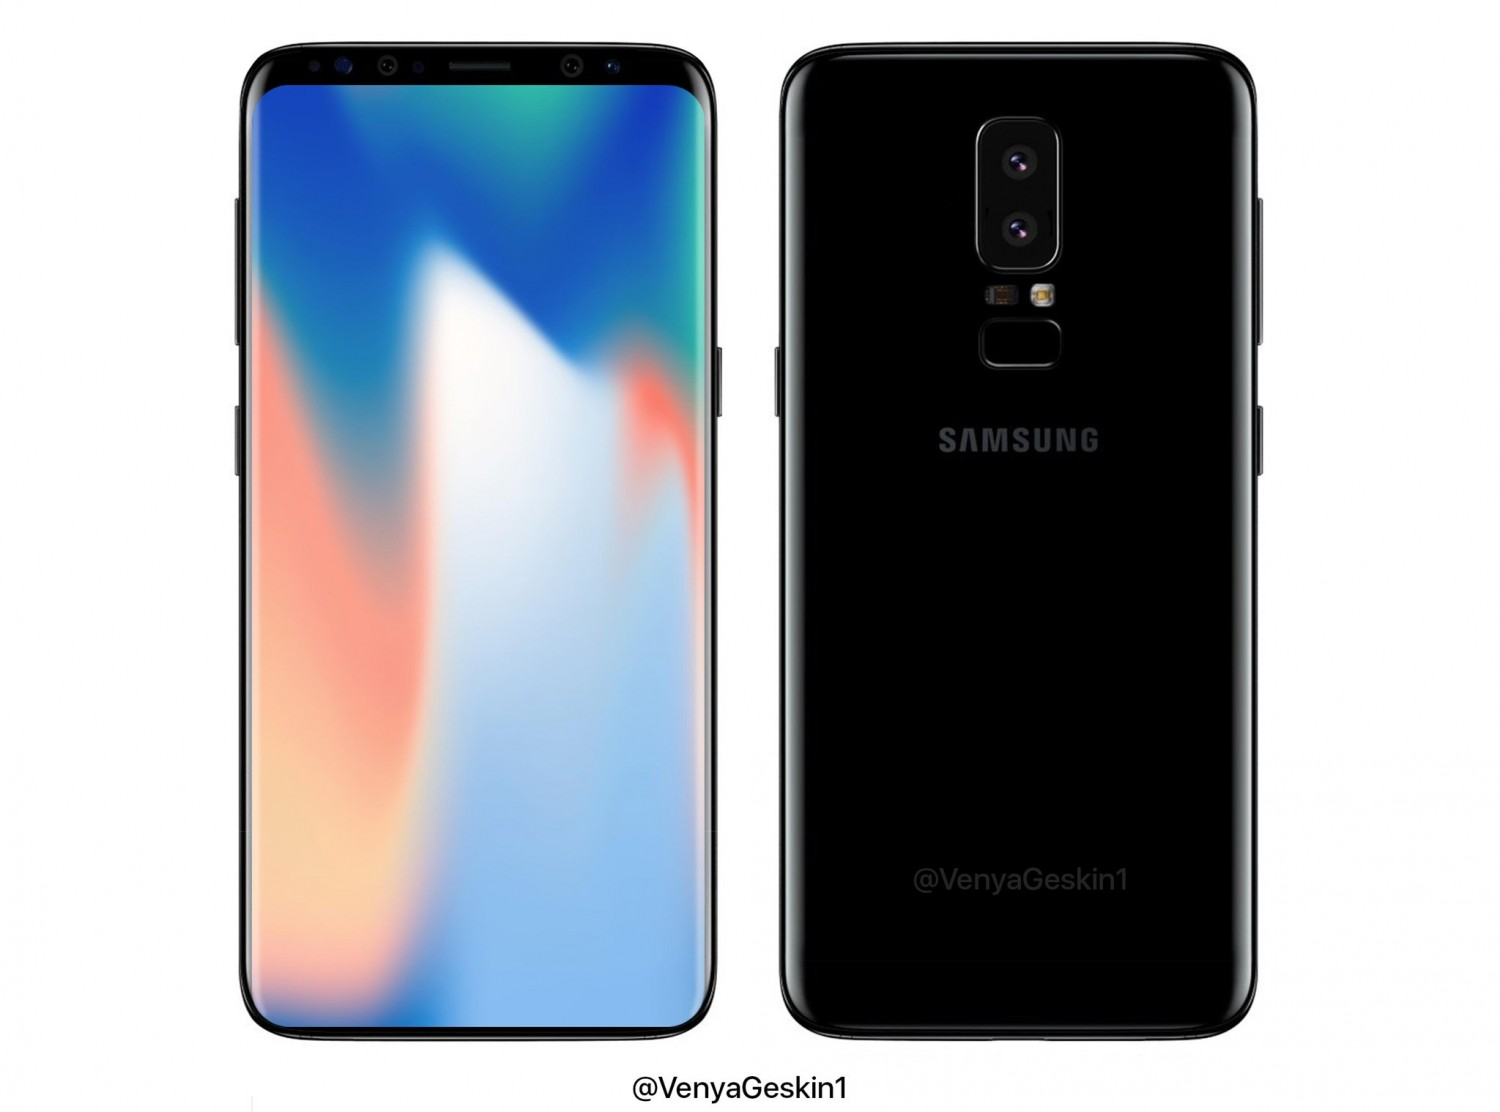 design and display samsung galaxy s9 and s9 the - 1024×759